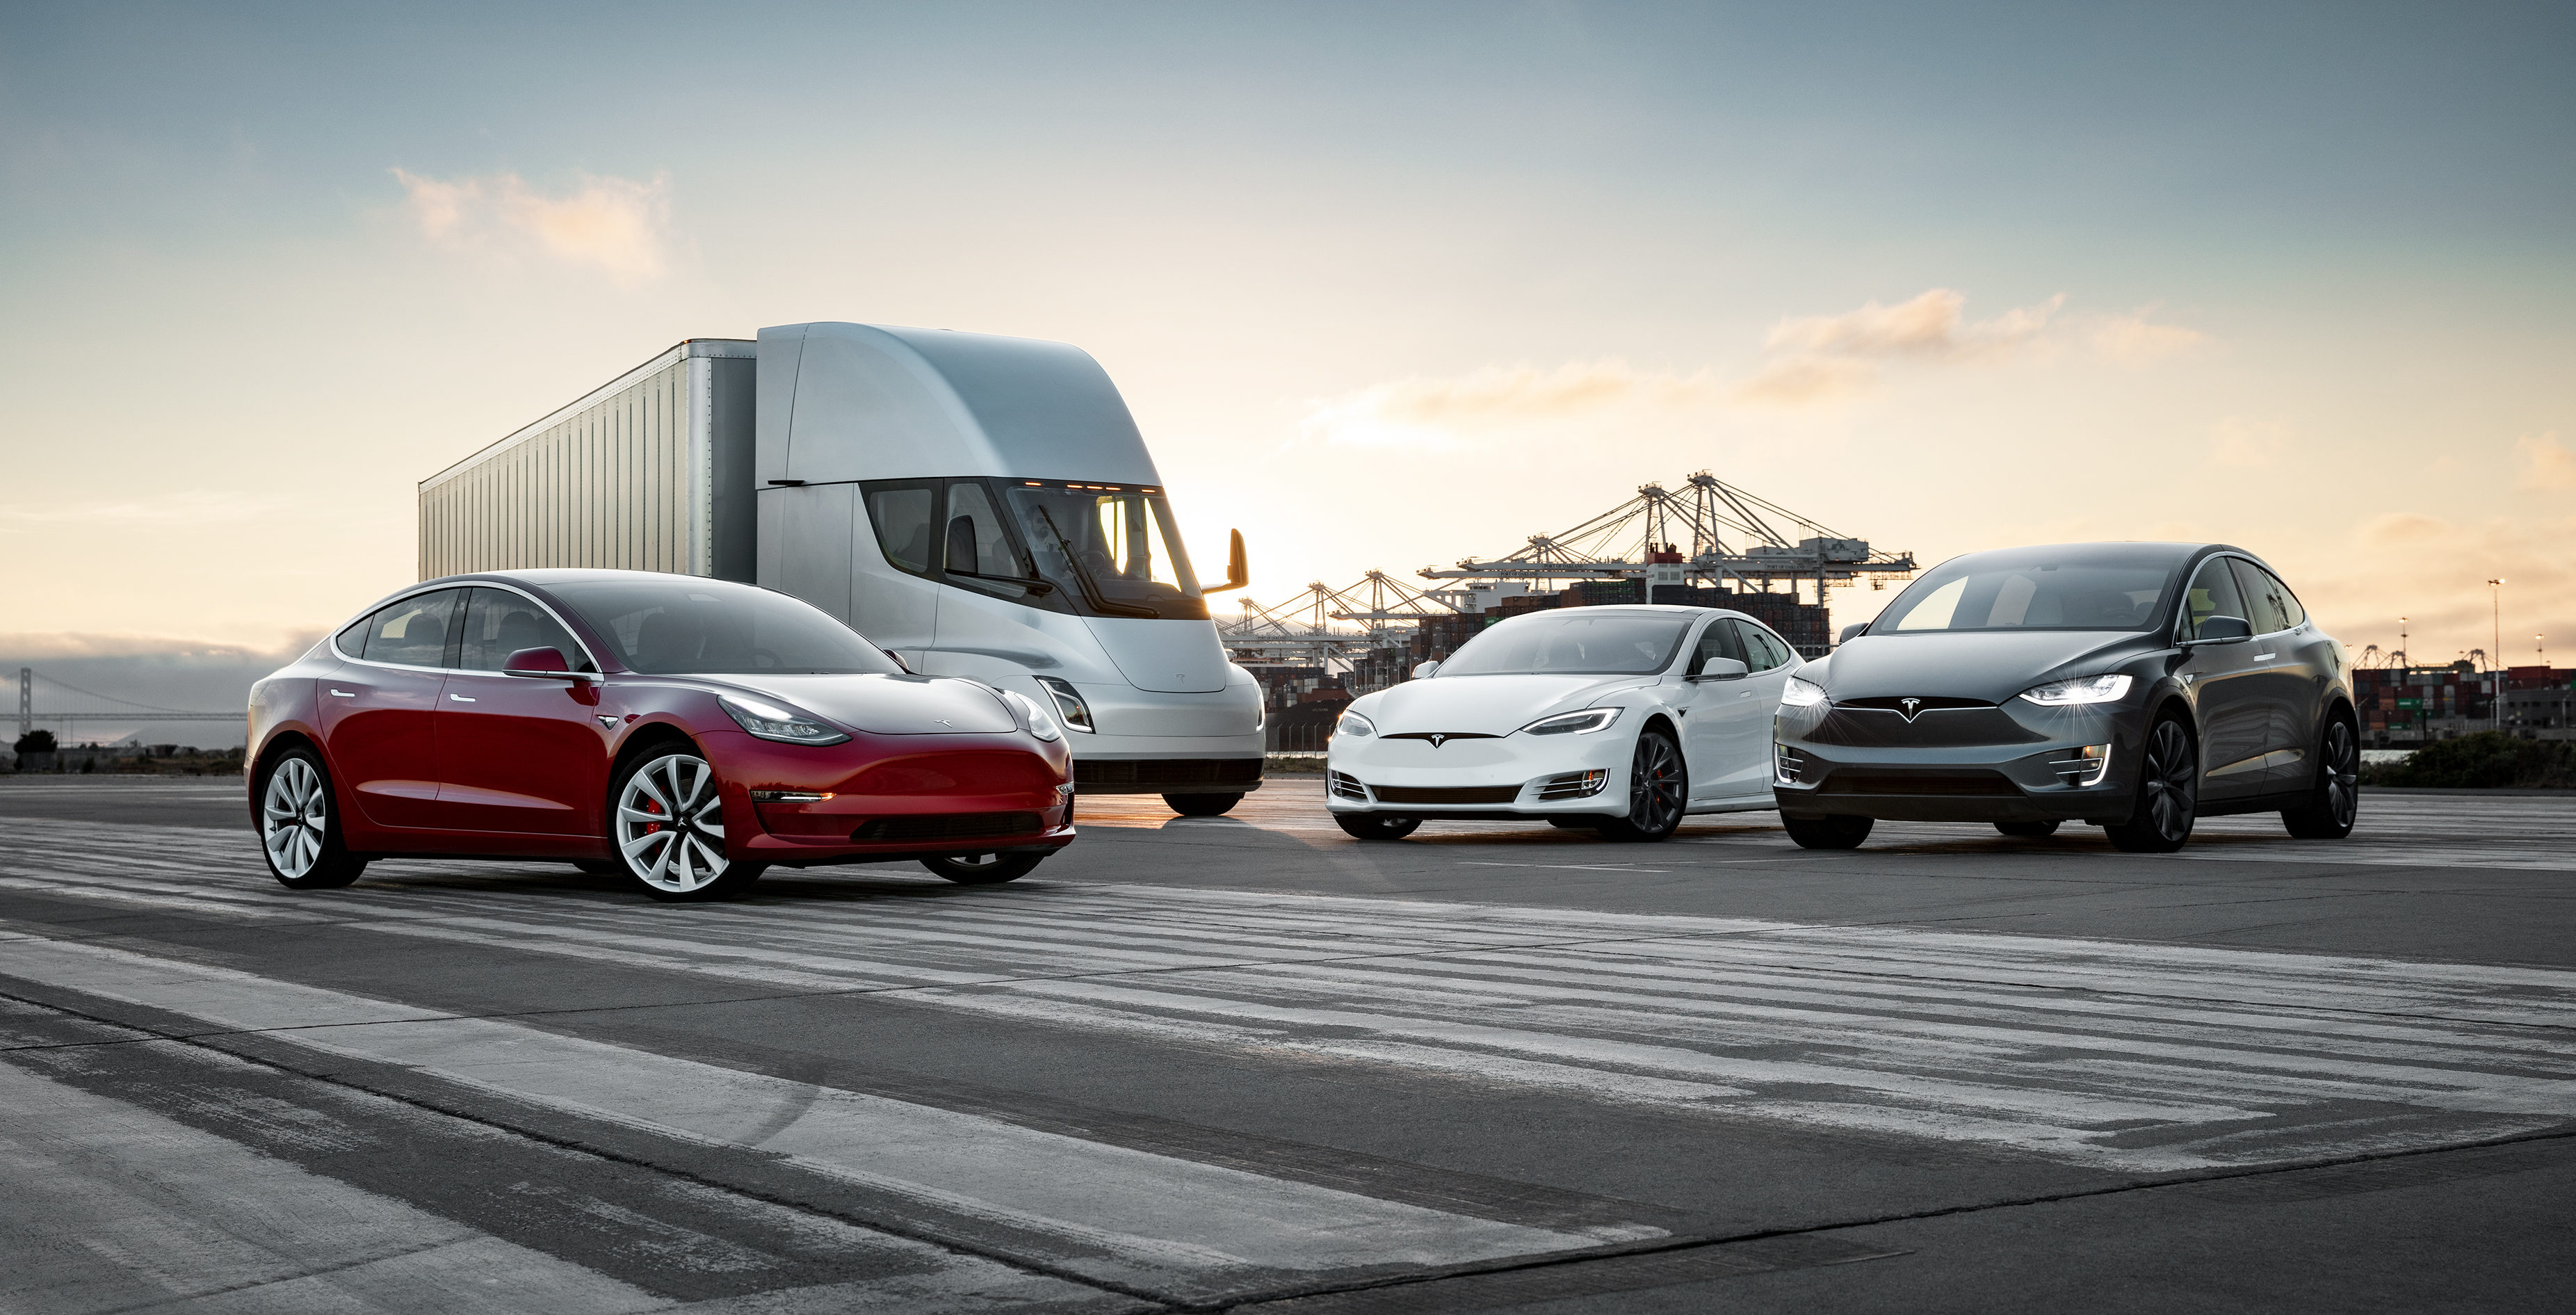 Tesla To Start Model Y Crossover Production At Gigafactory In 2020